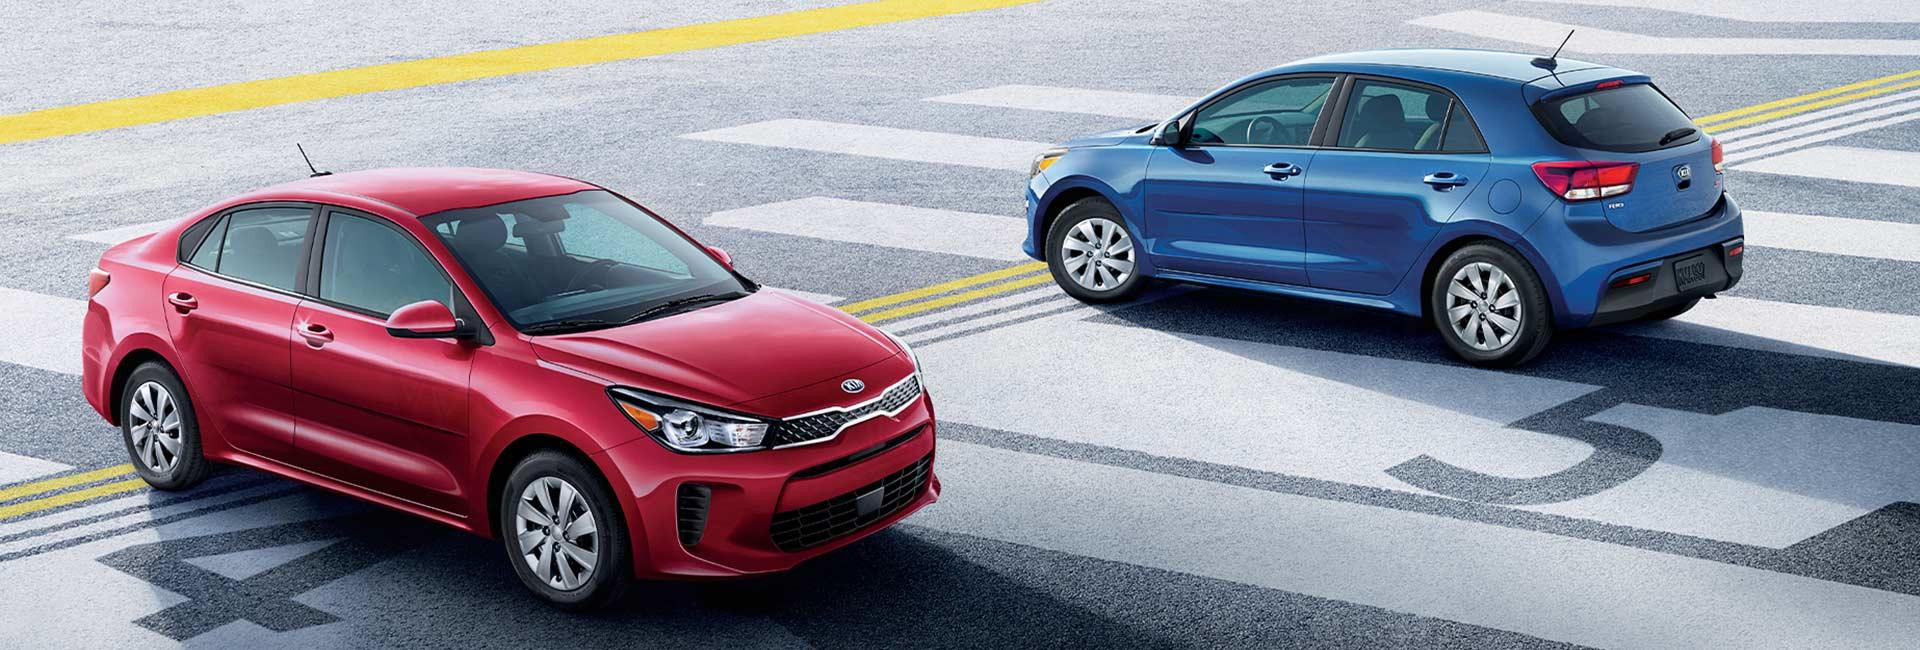 Picture of the 2020 Kia Rio for sale at Spitzer Kia Mansfield Ohio